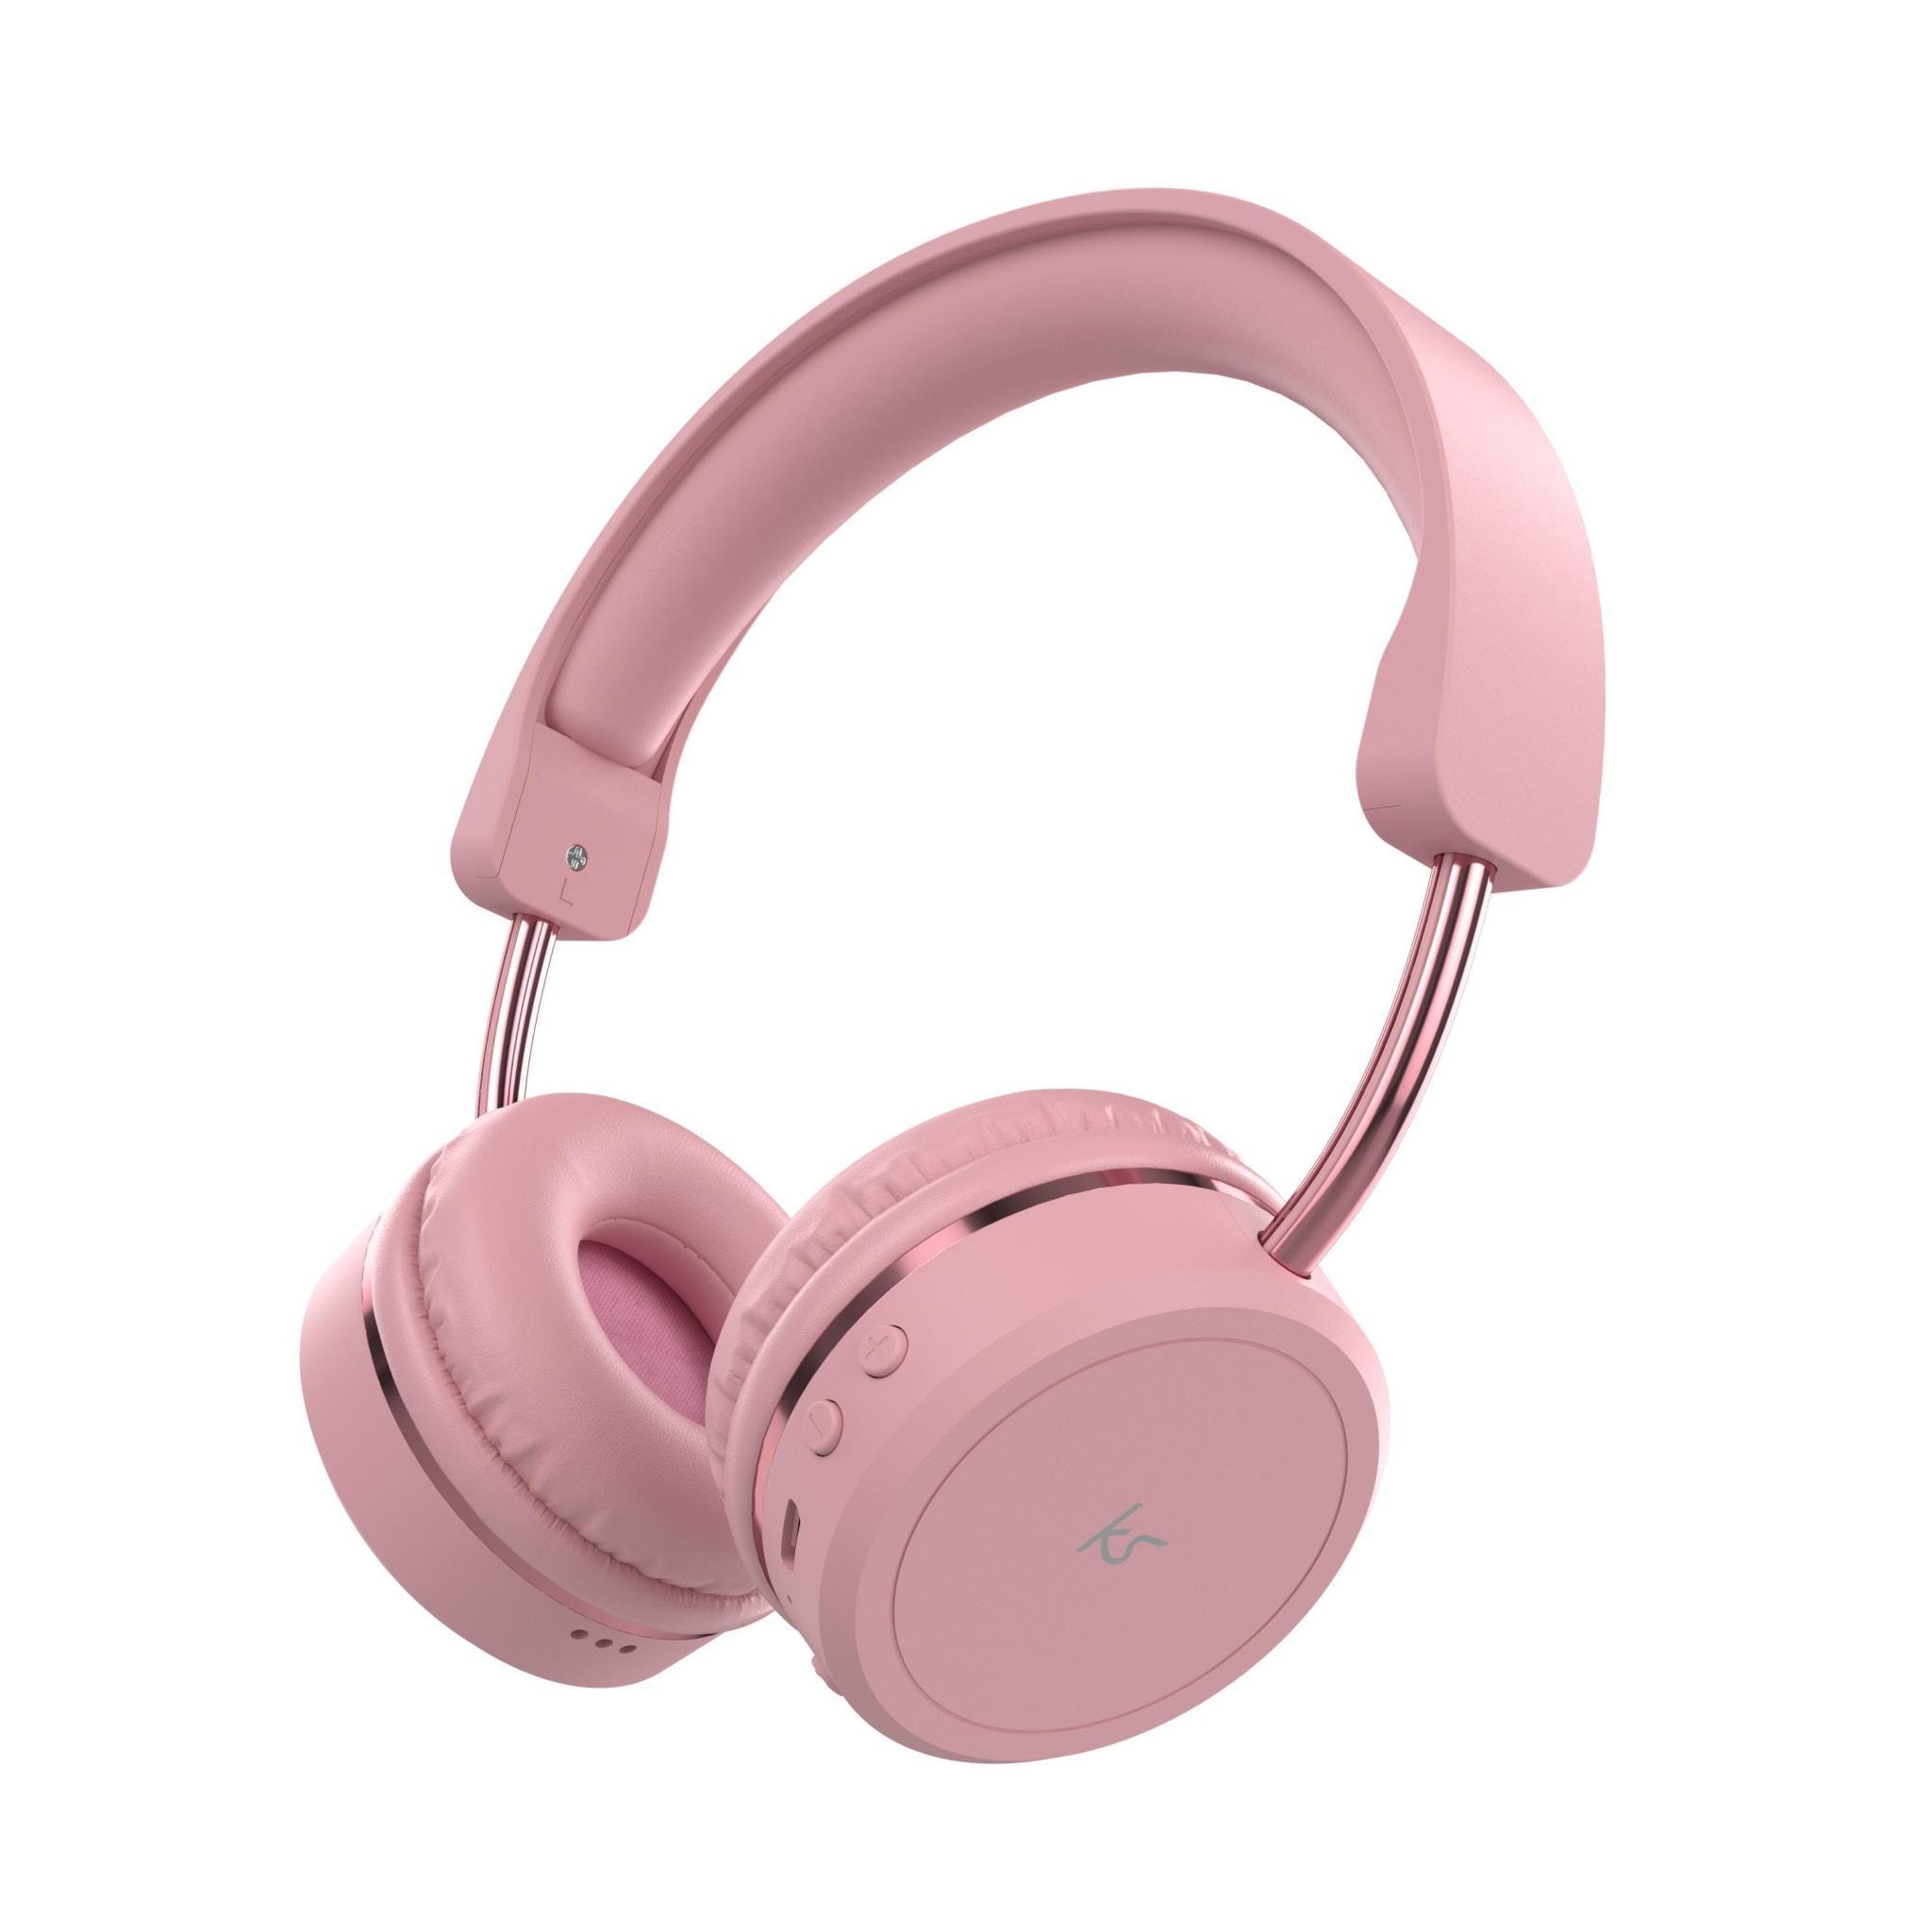 KitSound Metro X Wireless Bluetooth Over-Ear Headphones - Pink